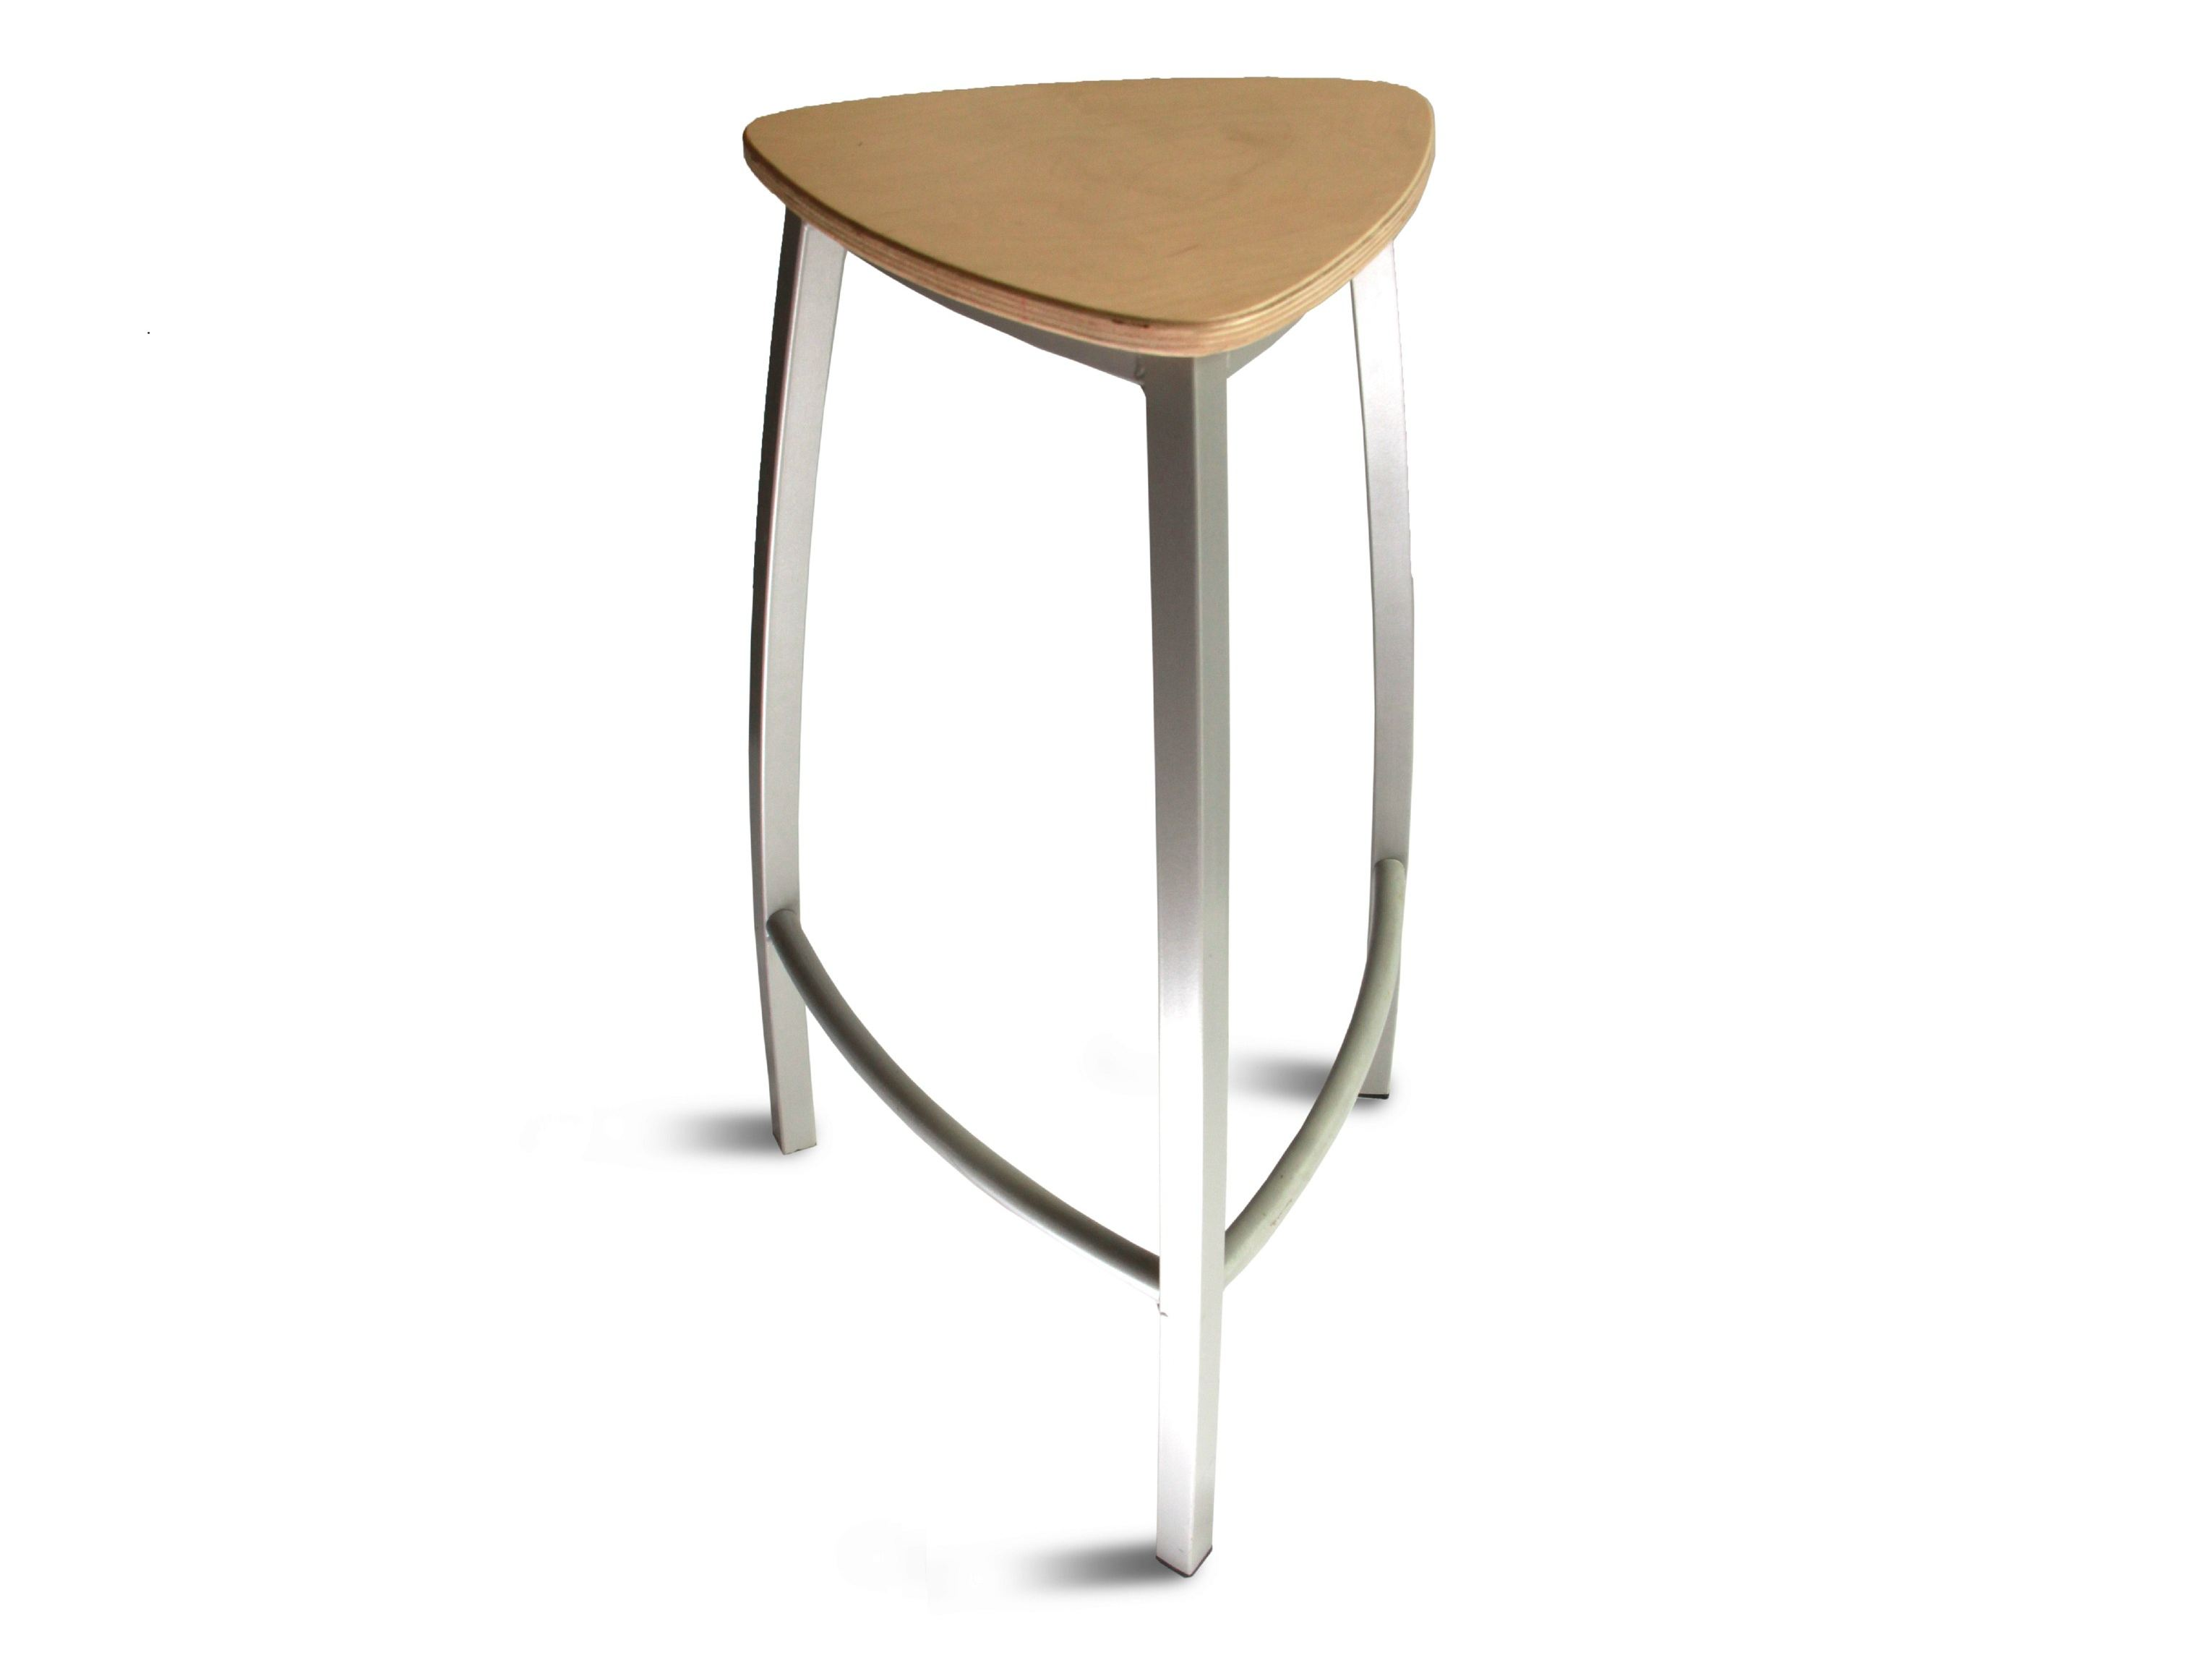 Delta stool by collection maison design arielle d for Arielle d collection maison